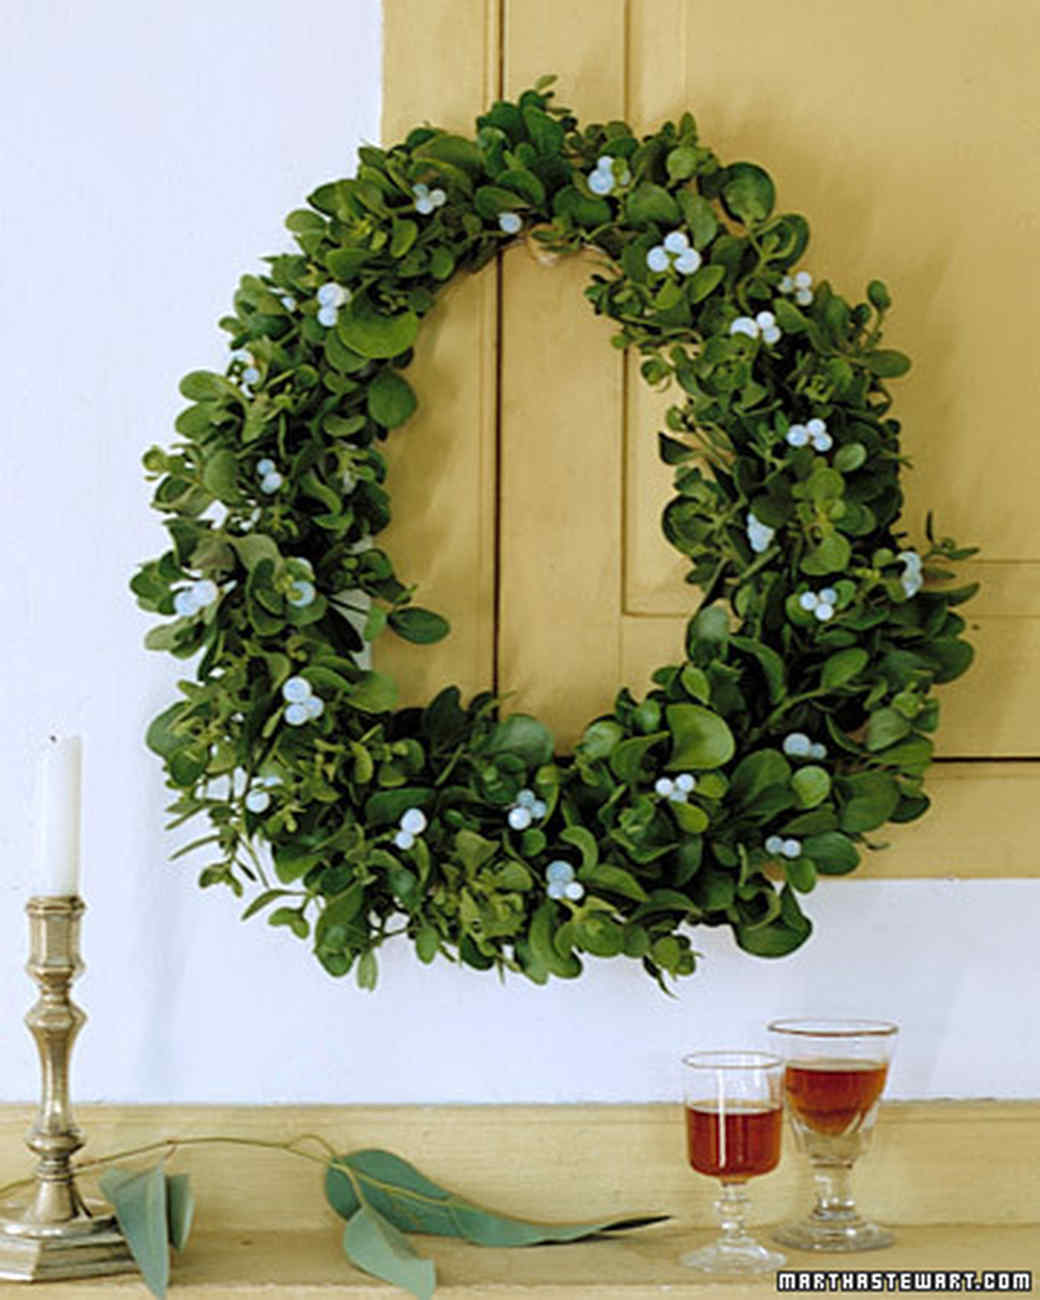 How to make real christmas wreaths - How To Make Real Christmas Wreaths 44